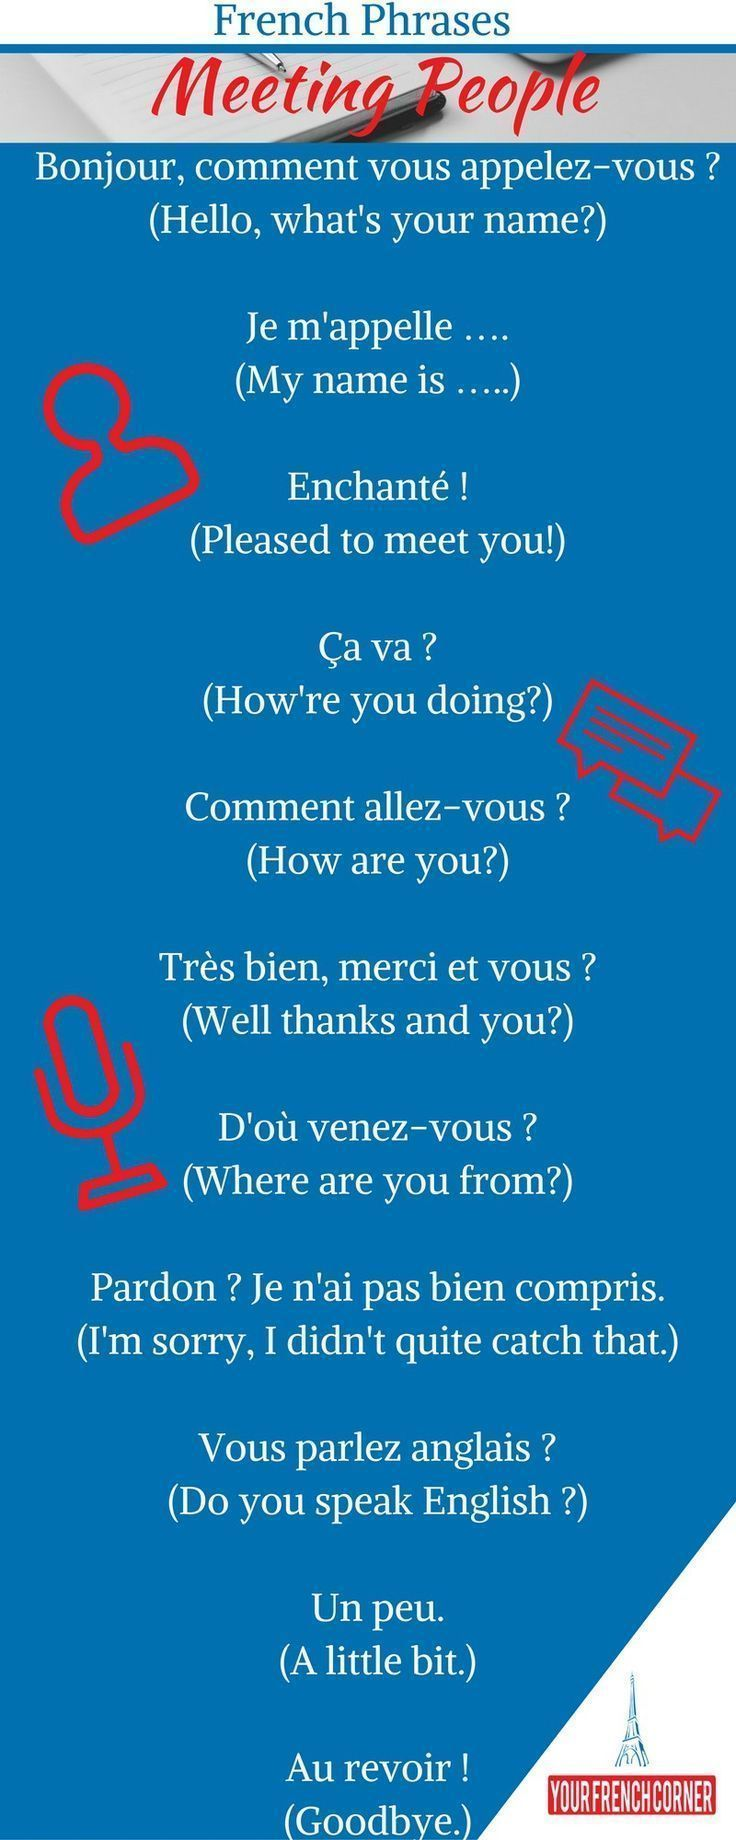 french phrases meeting people #frenchlanguagelearning